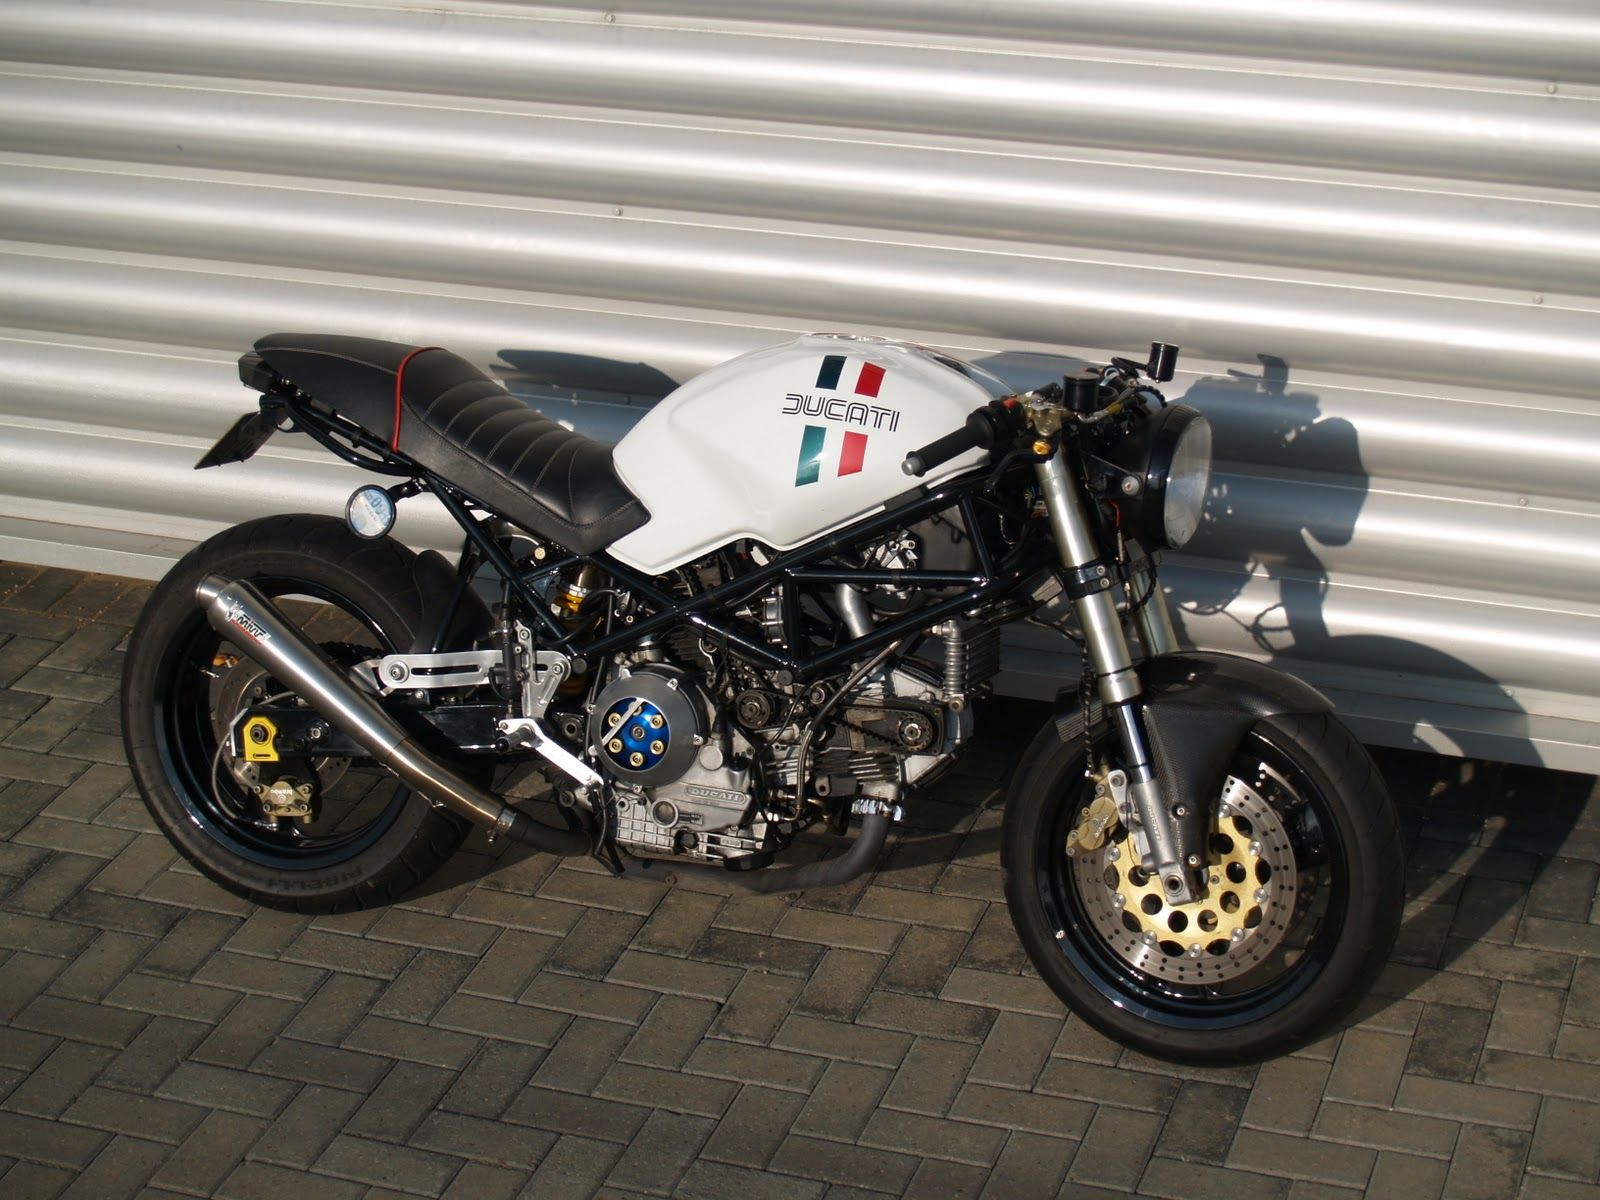 ducati m900 cafe racer special ducati monster 900 cafe racer ducati monsters pinterest. Black Bedroom Furniture Sets. Home Design Ideas